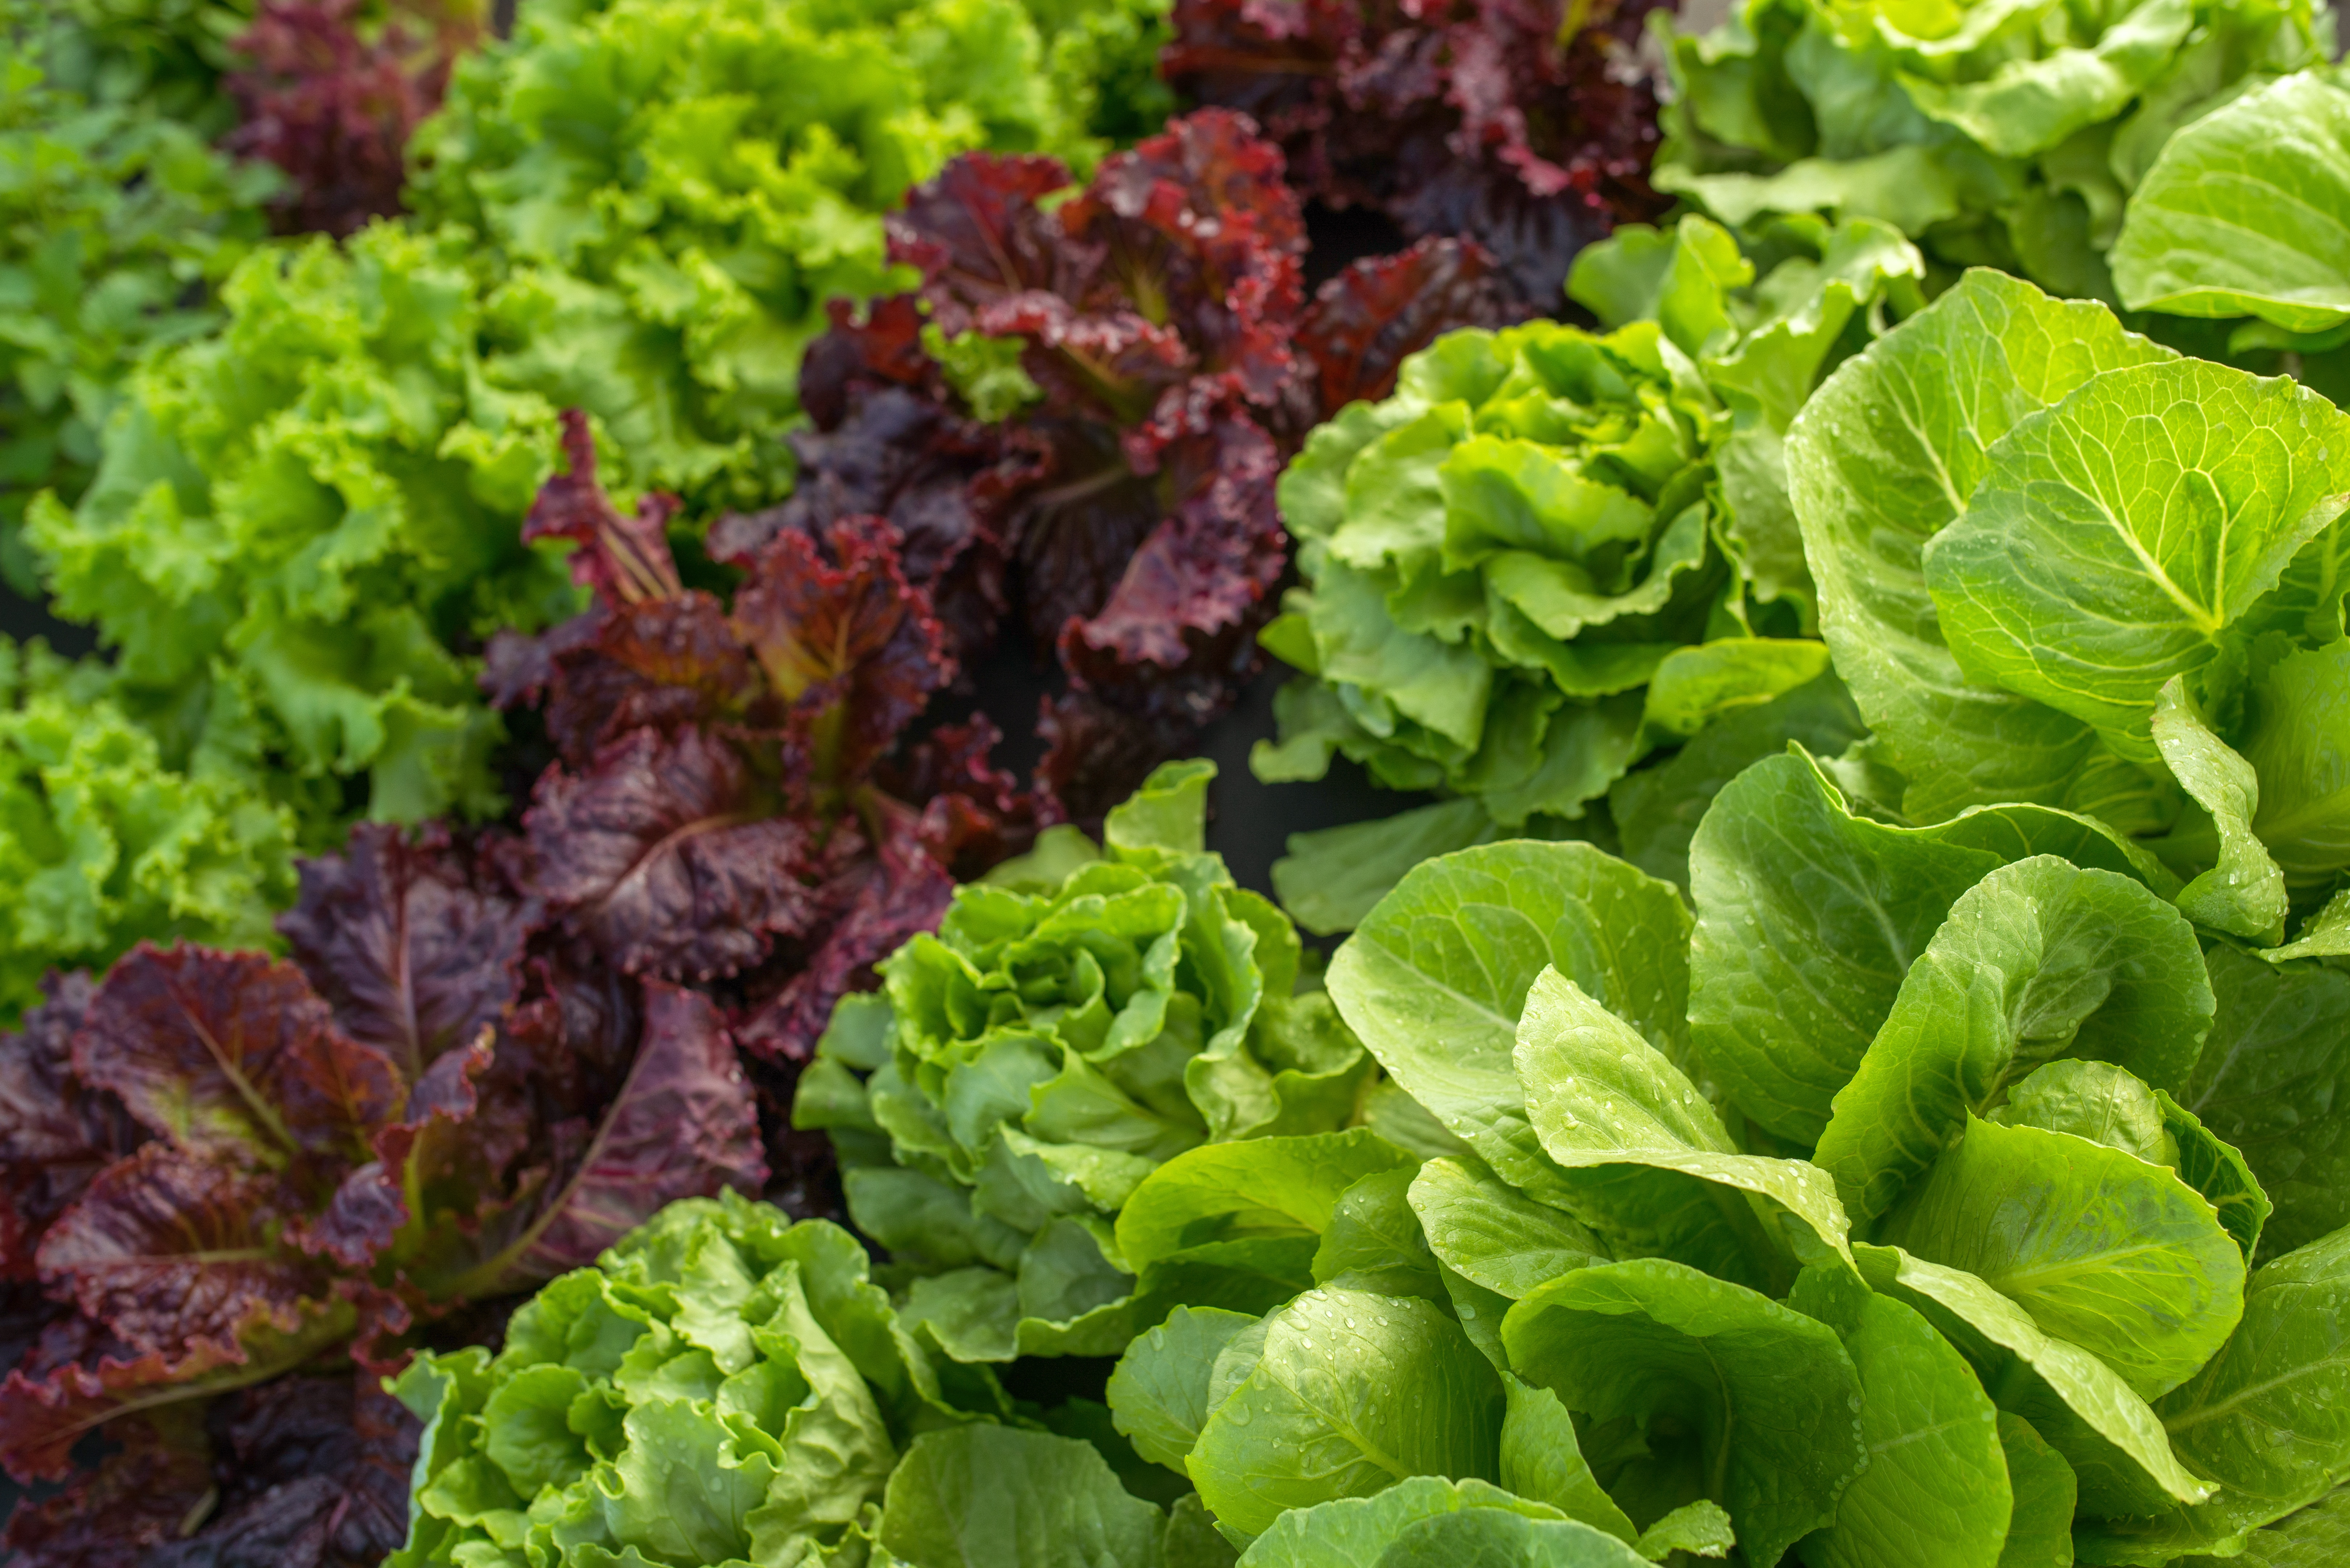 farm leaf lettuce in the field of vegetable beds